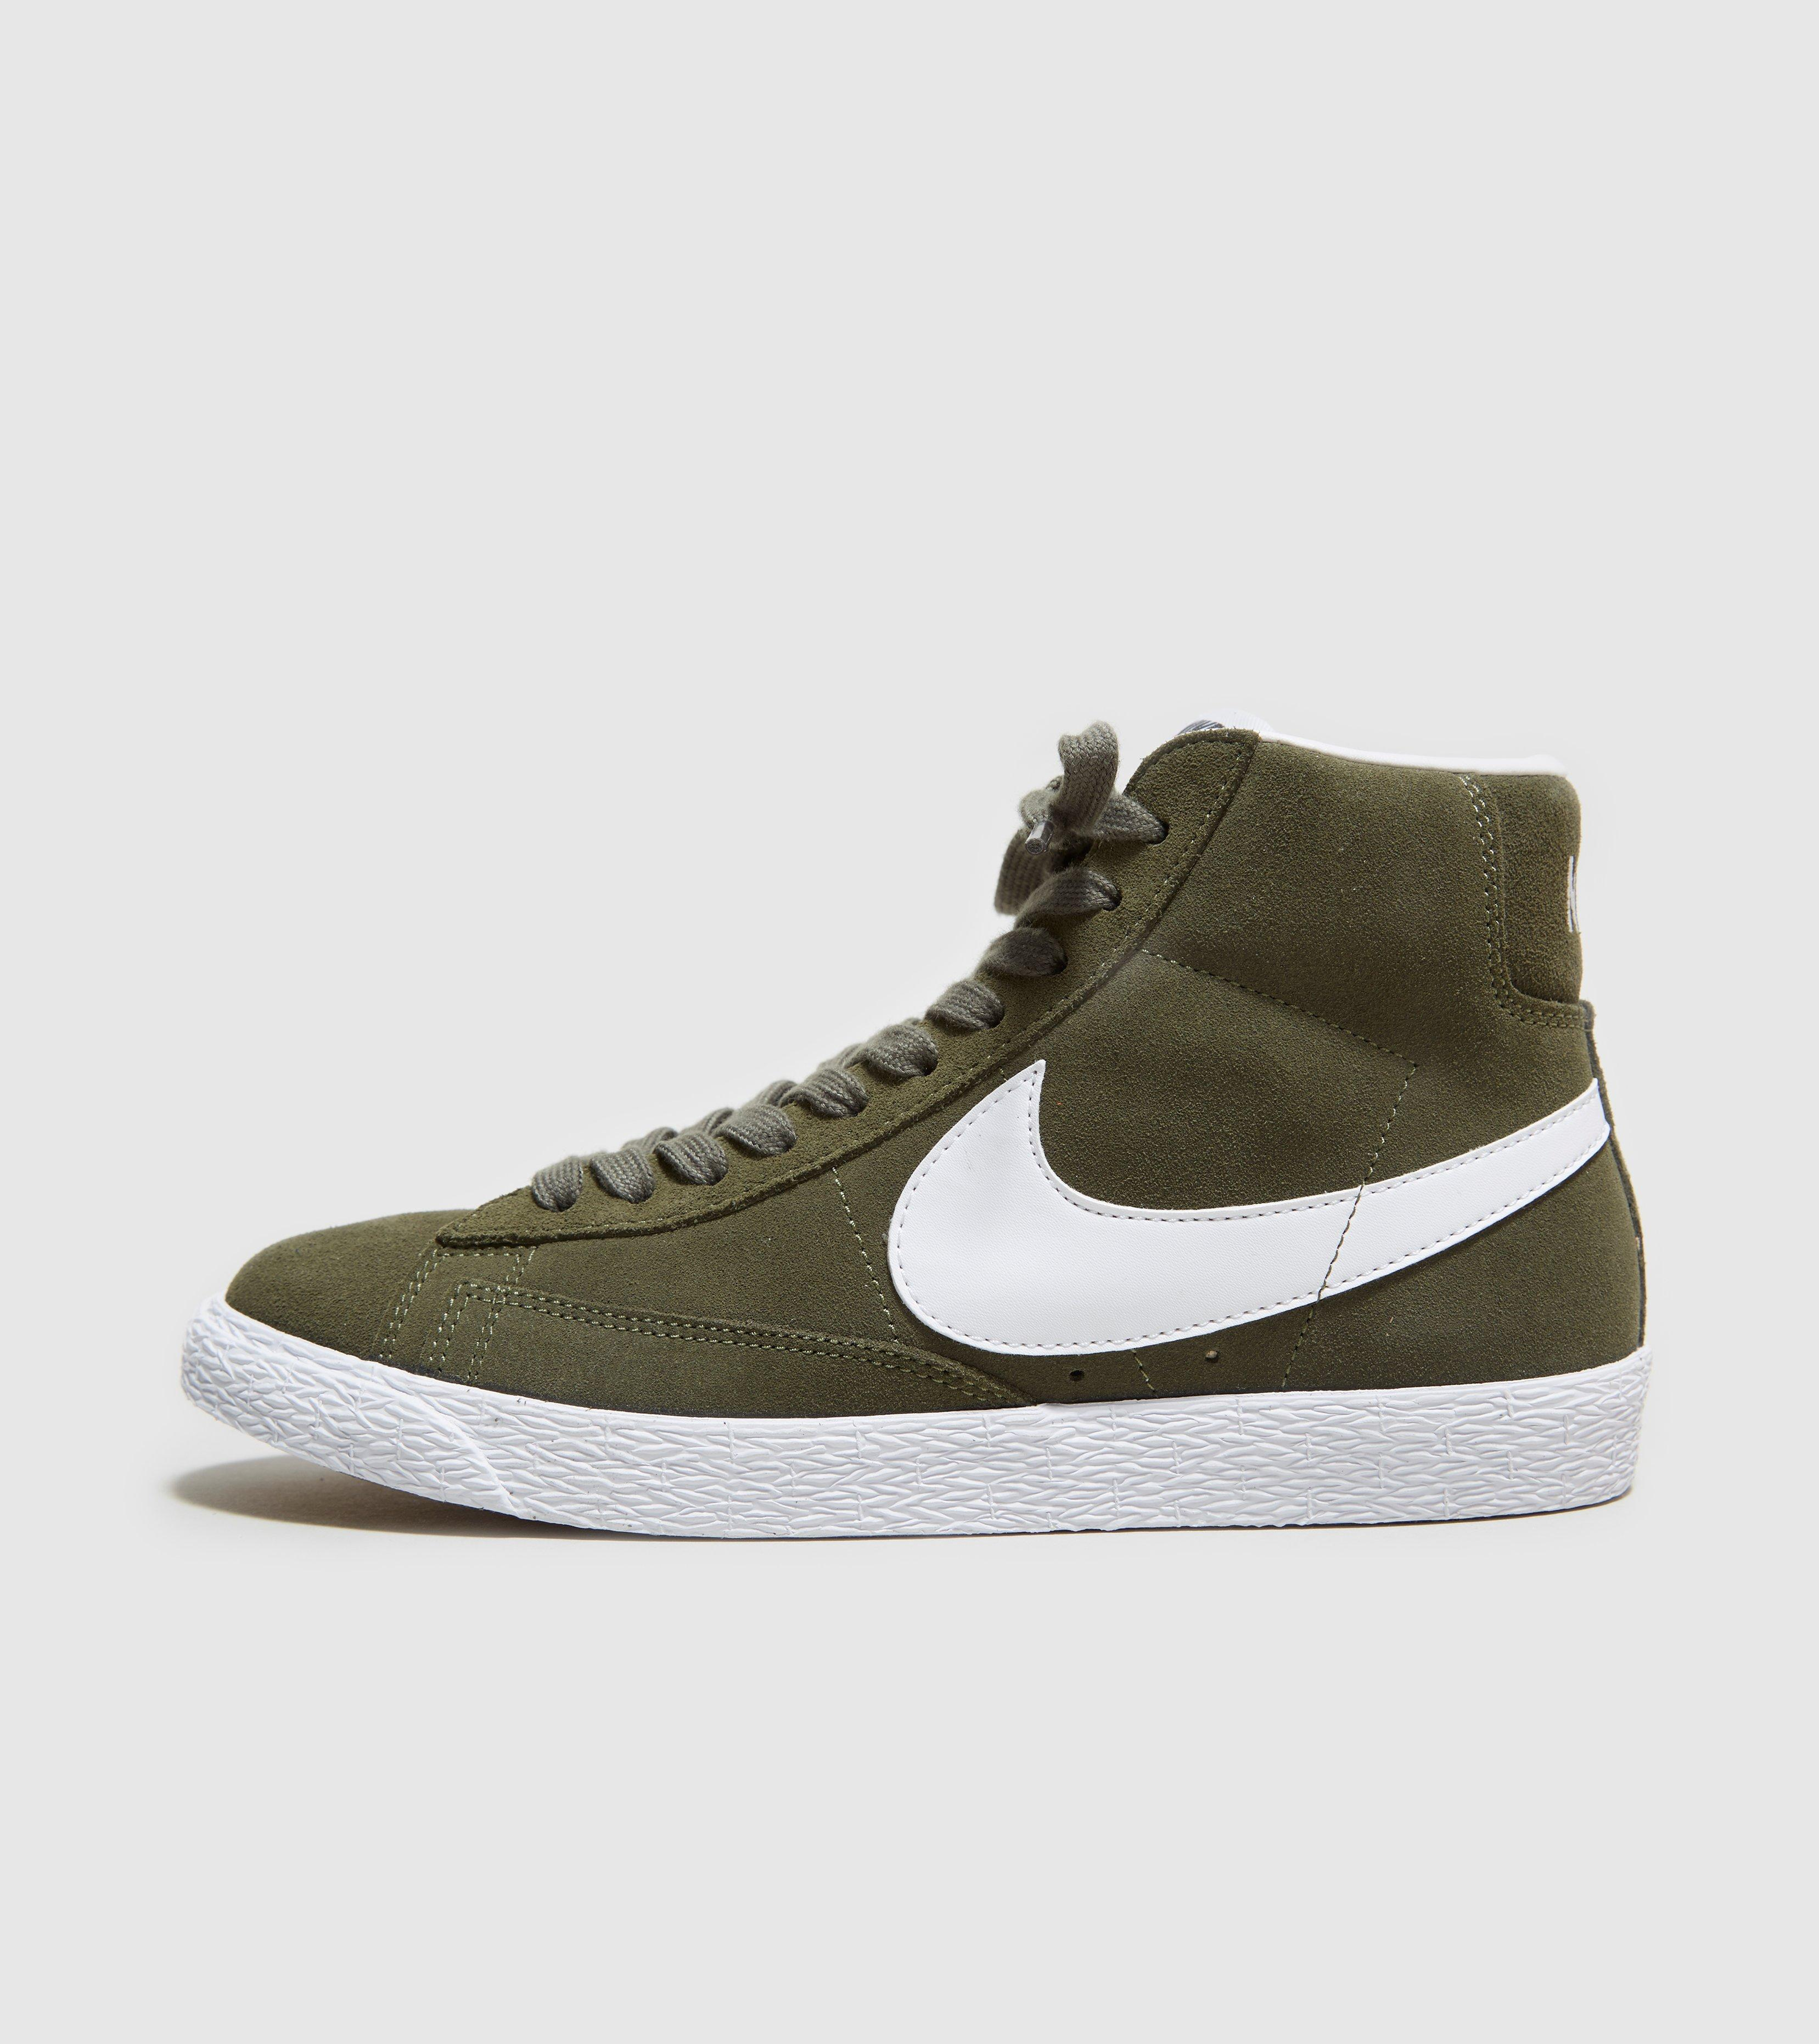 best website 9c69f 97065 Lyst - Nike Blazer Mid Suede in Green